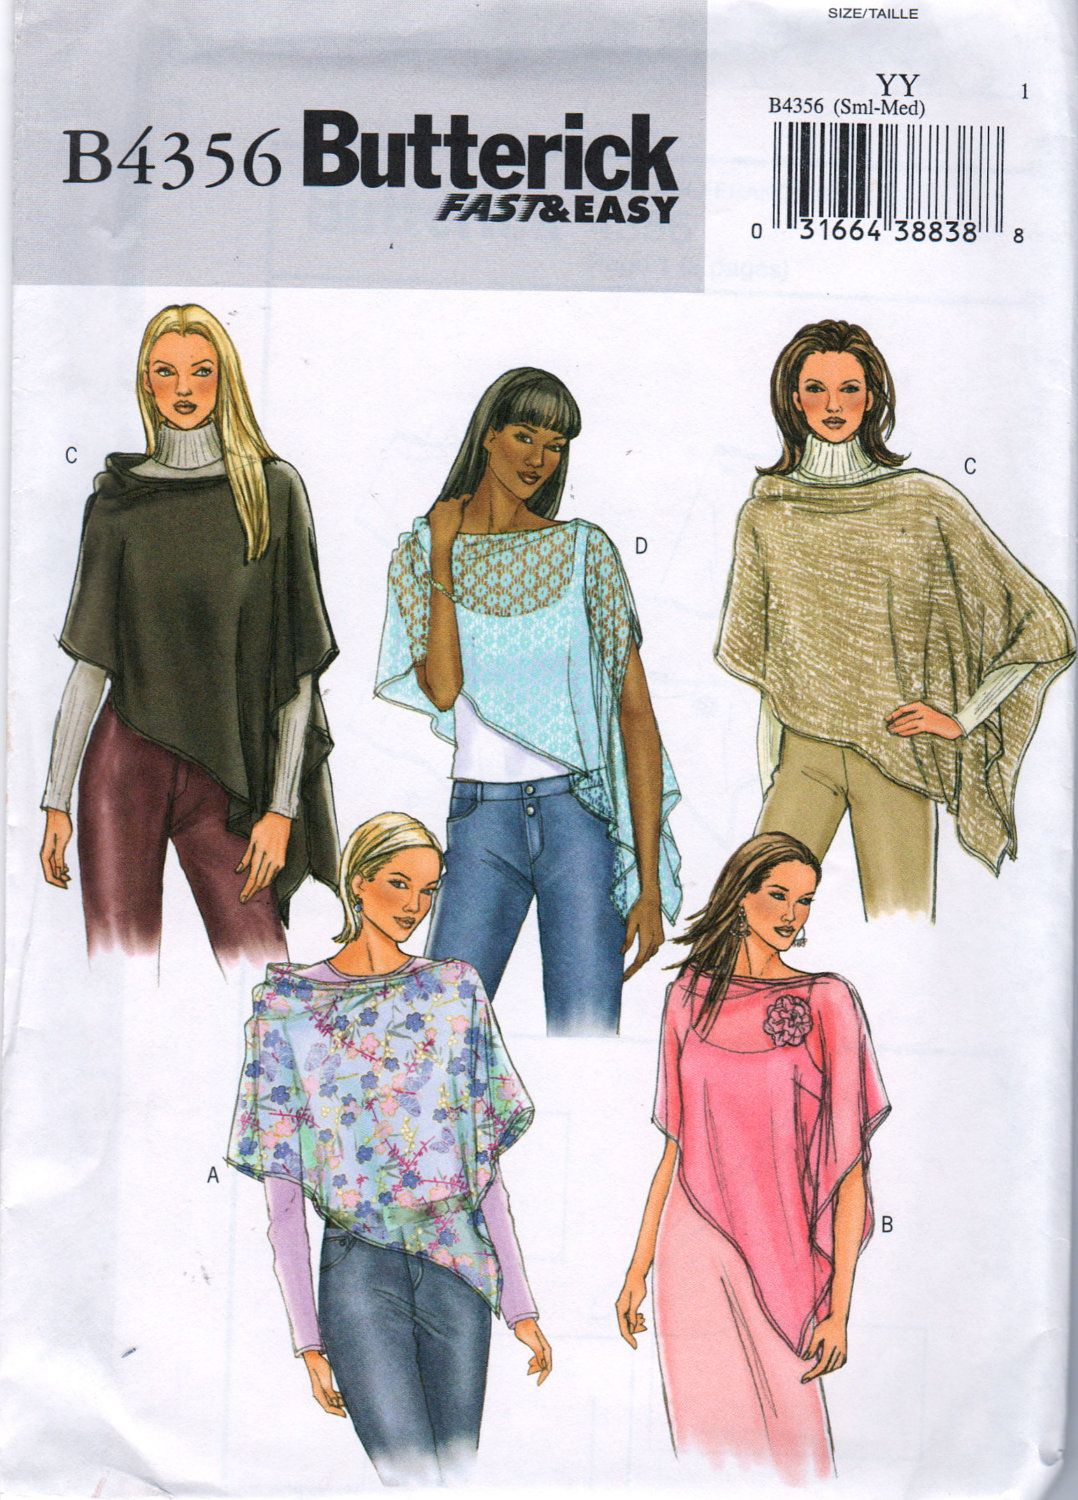 Butterick 4356 fast and easy misses asymmetrical poncho pattern butterick 4356 fast and easy misses asymmetrical poncho pattern flower trim womens sewing pattern size sm jeuxipadfo Choice Image